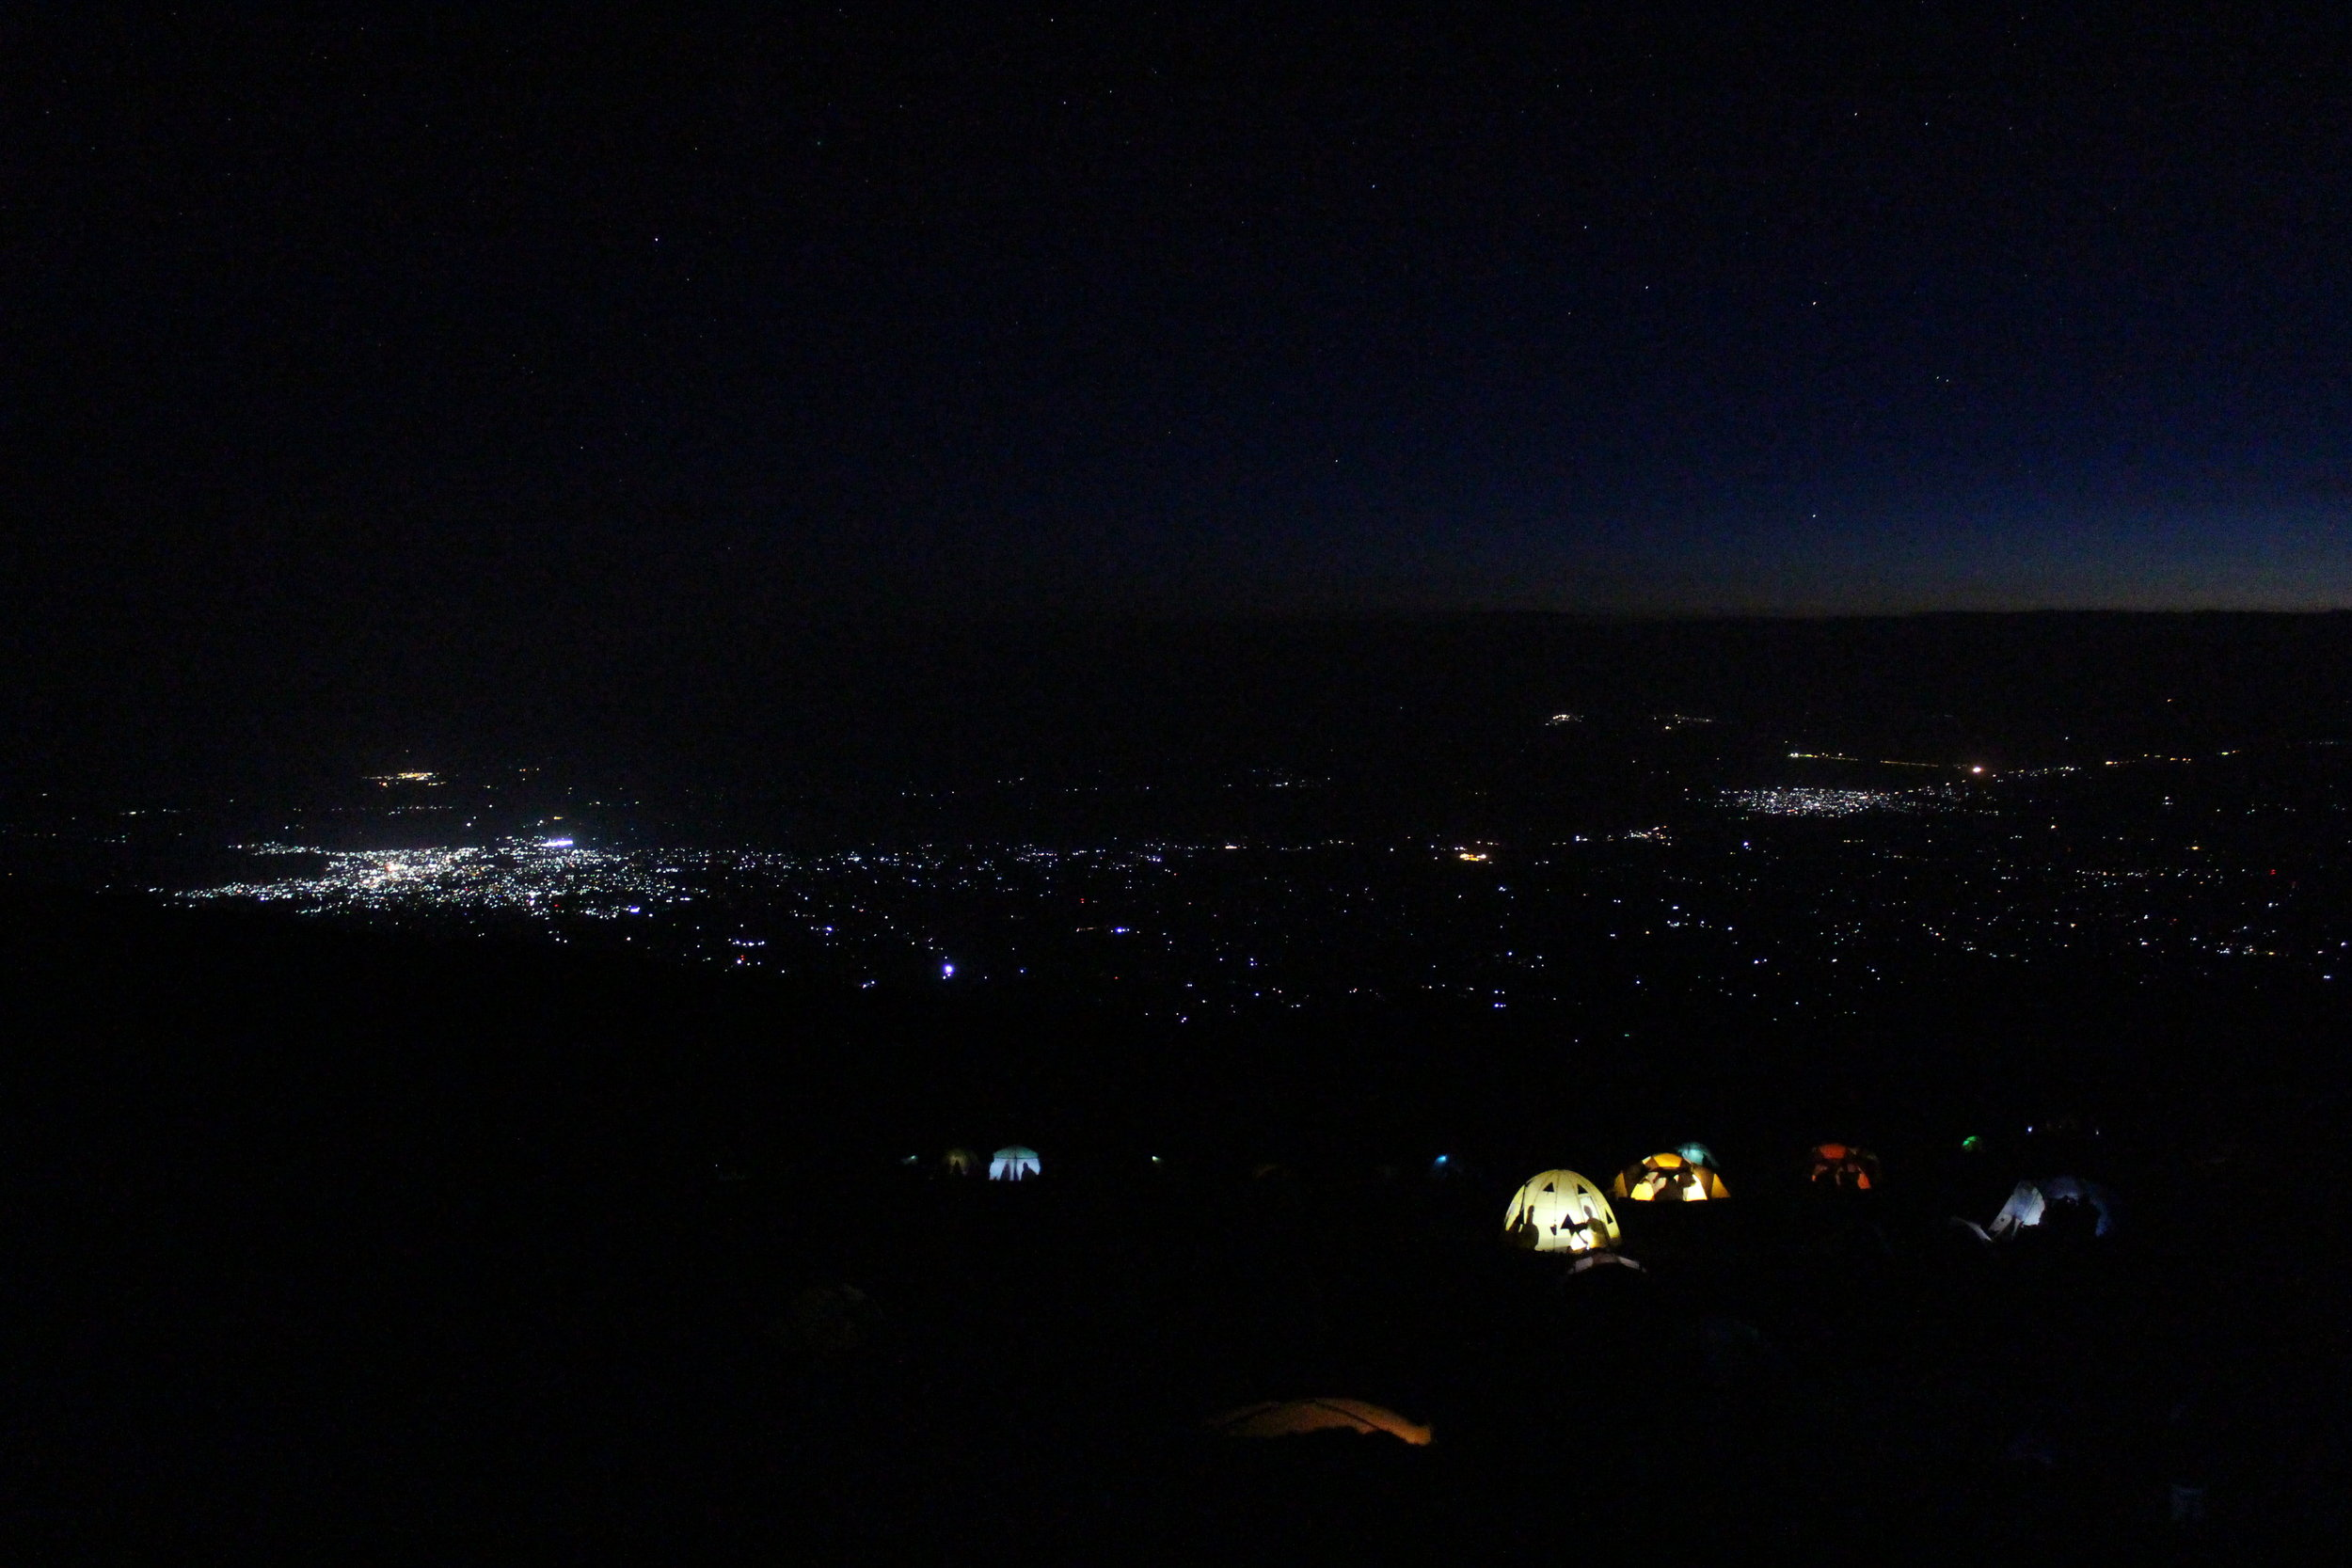 Stargazing and looking at the lights of Moshi from Mount Kilimanjaro